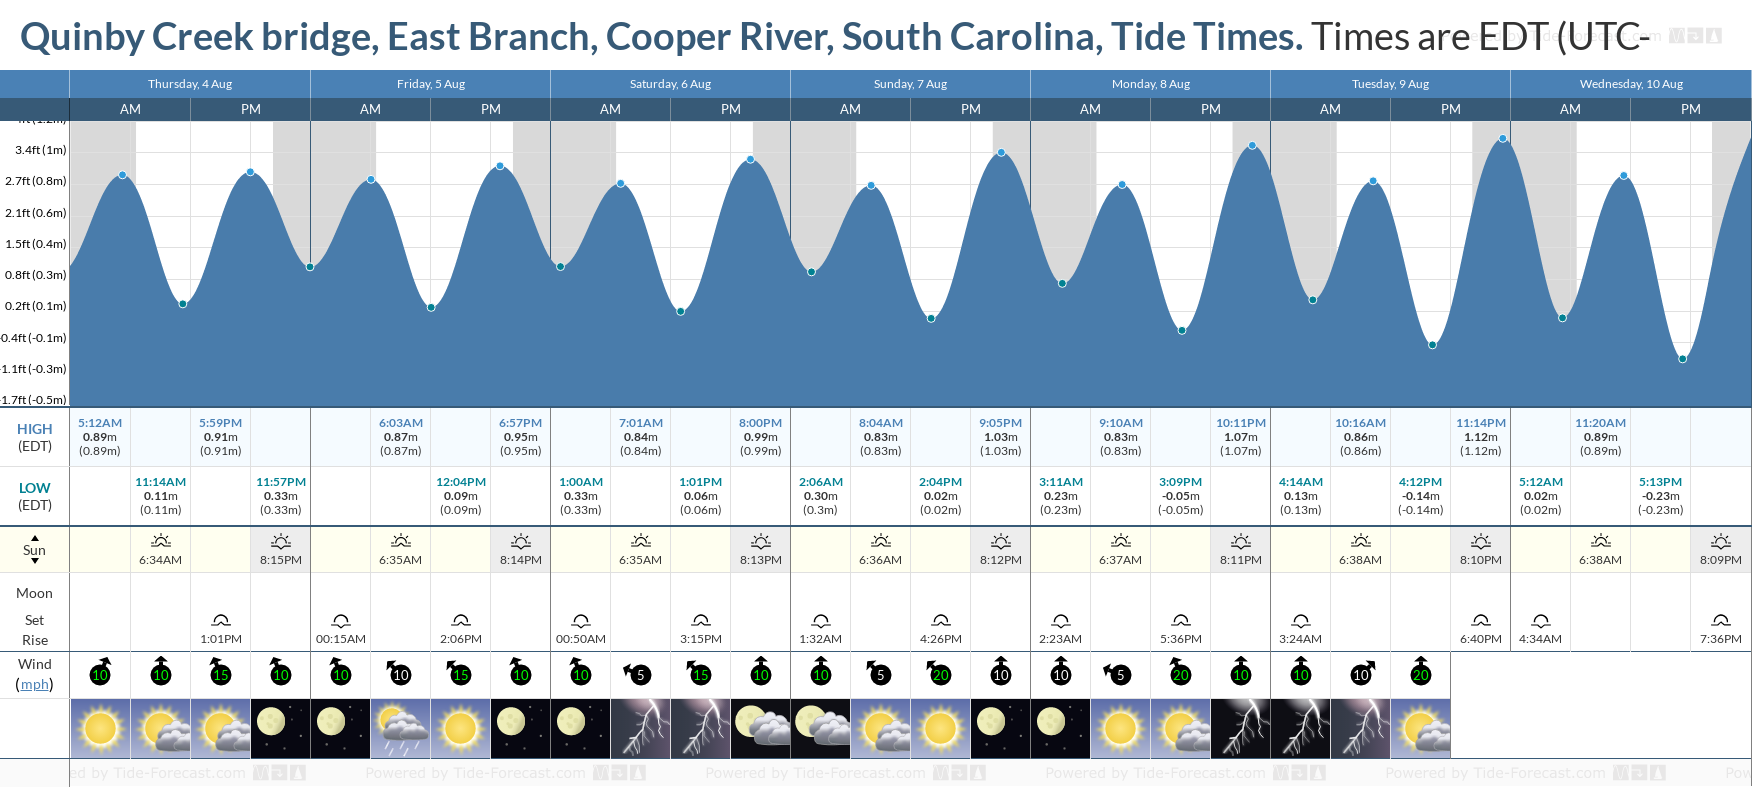 Quinby Creek bridge, East Branch, Cooper River, South Carolina Tide Chart including high and low tide tide times for the next 7 days